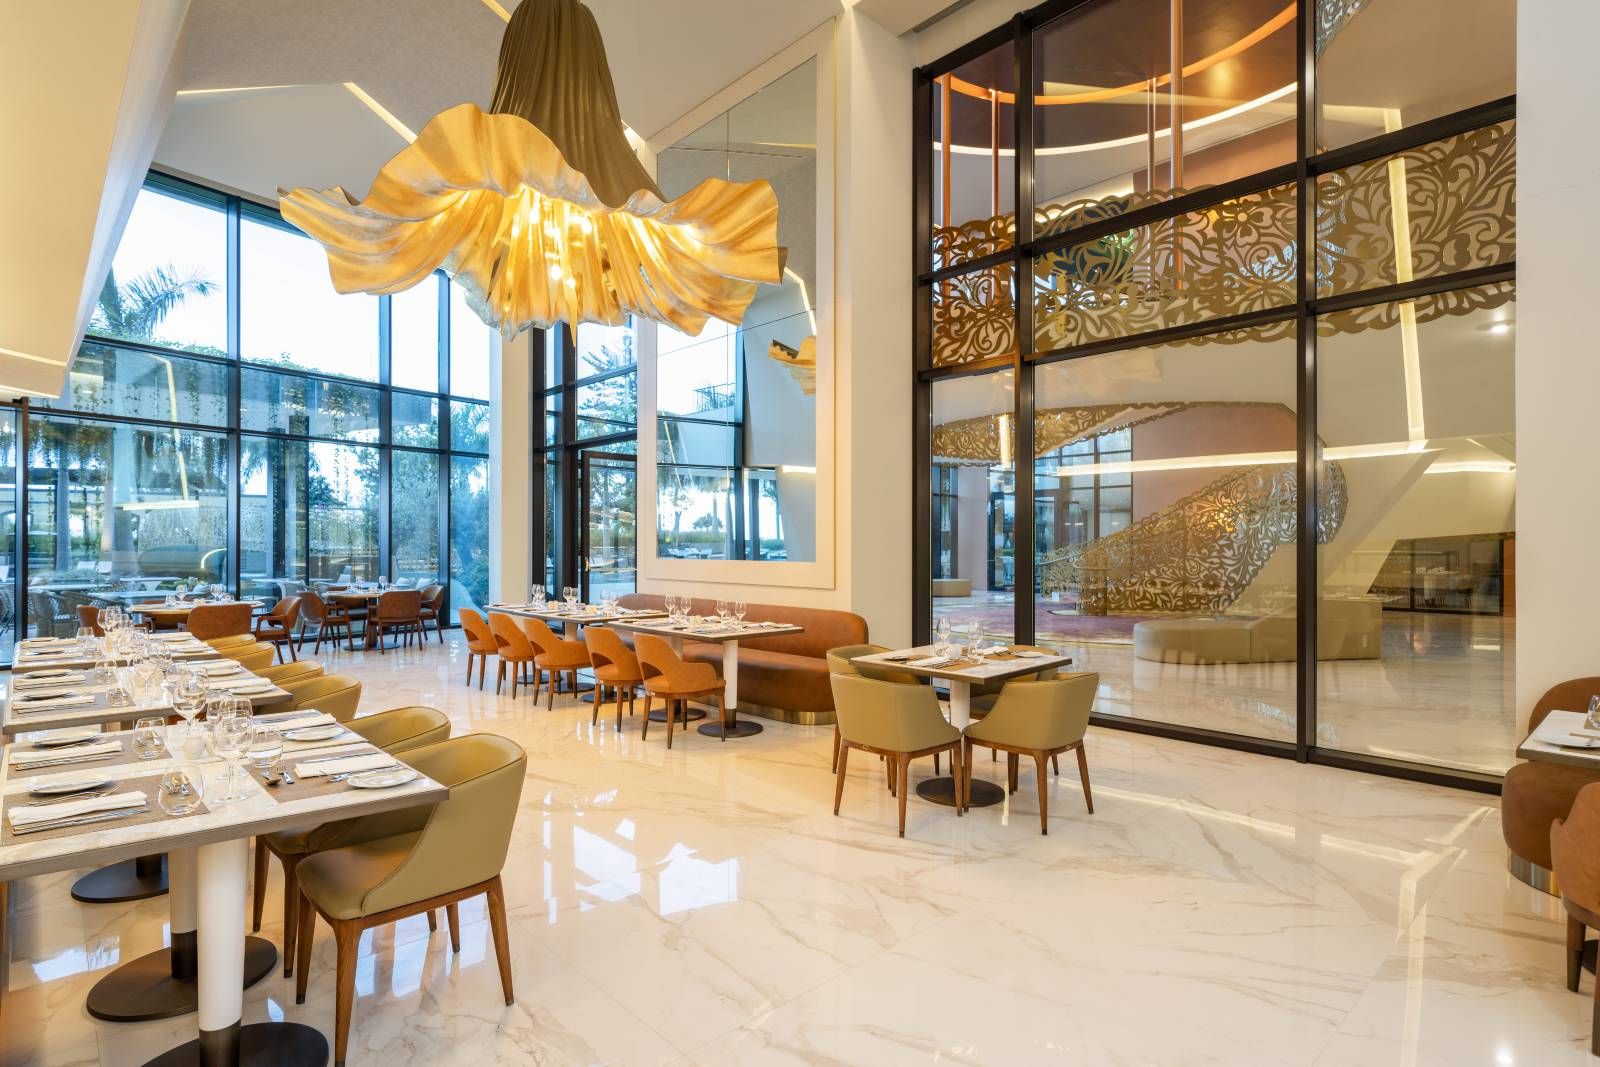 news-Sharing Some Shots of Savoy Palace Hotel Project in Portugal-GOJO-img-4